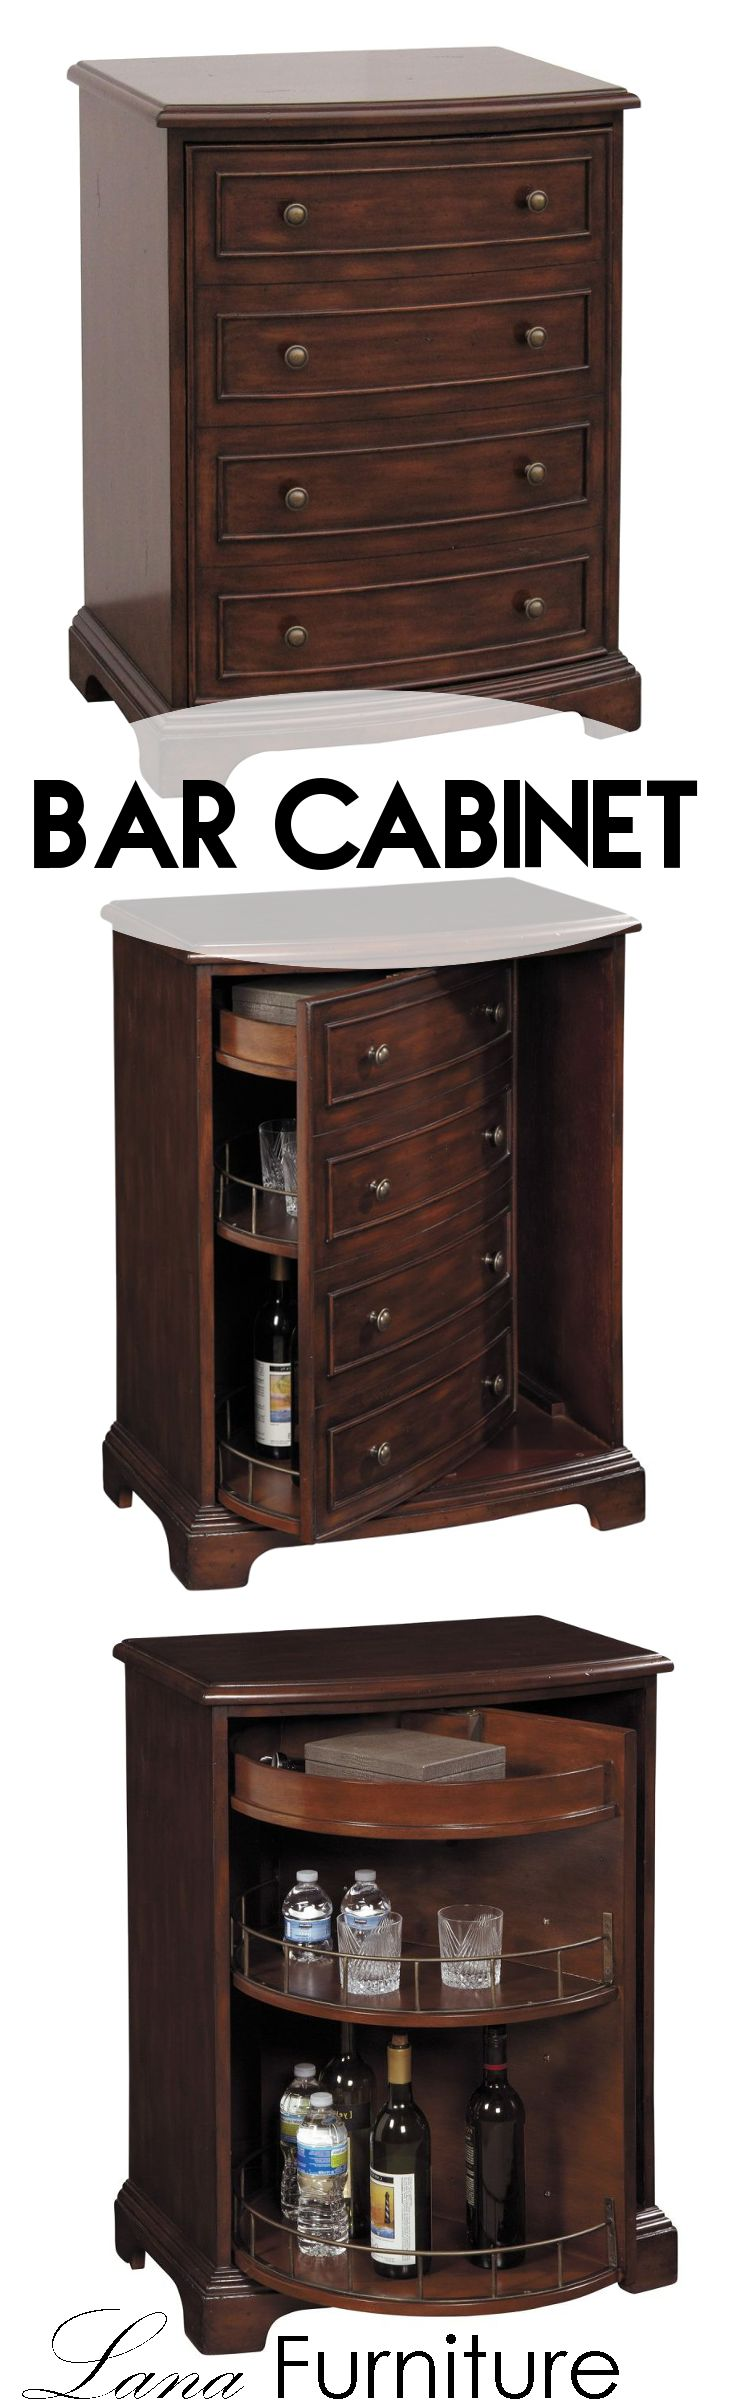 27 best pulaski images on pinterest pulaski furniture accent a great cabinet for a home office kitchen or dining room that can easily hide away extra drinks or spirits when they re not needed bar furniture